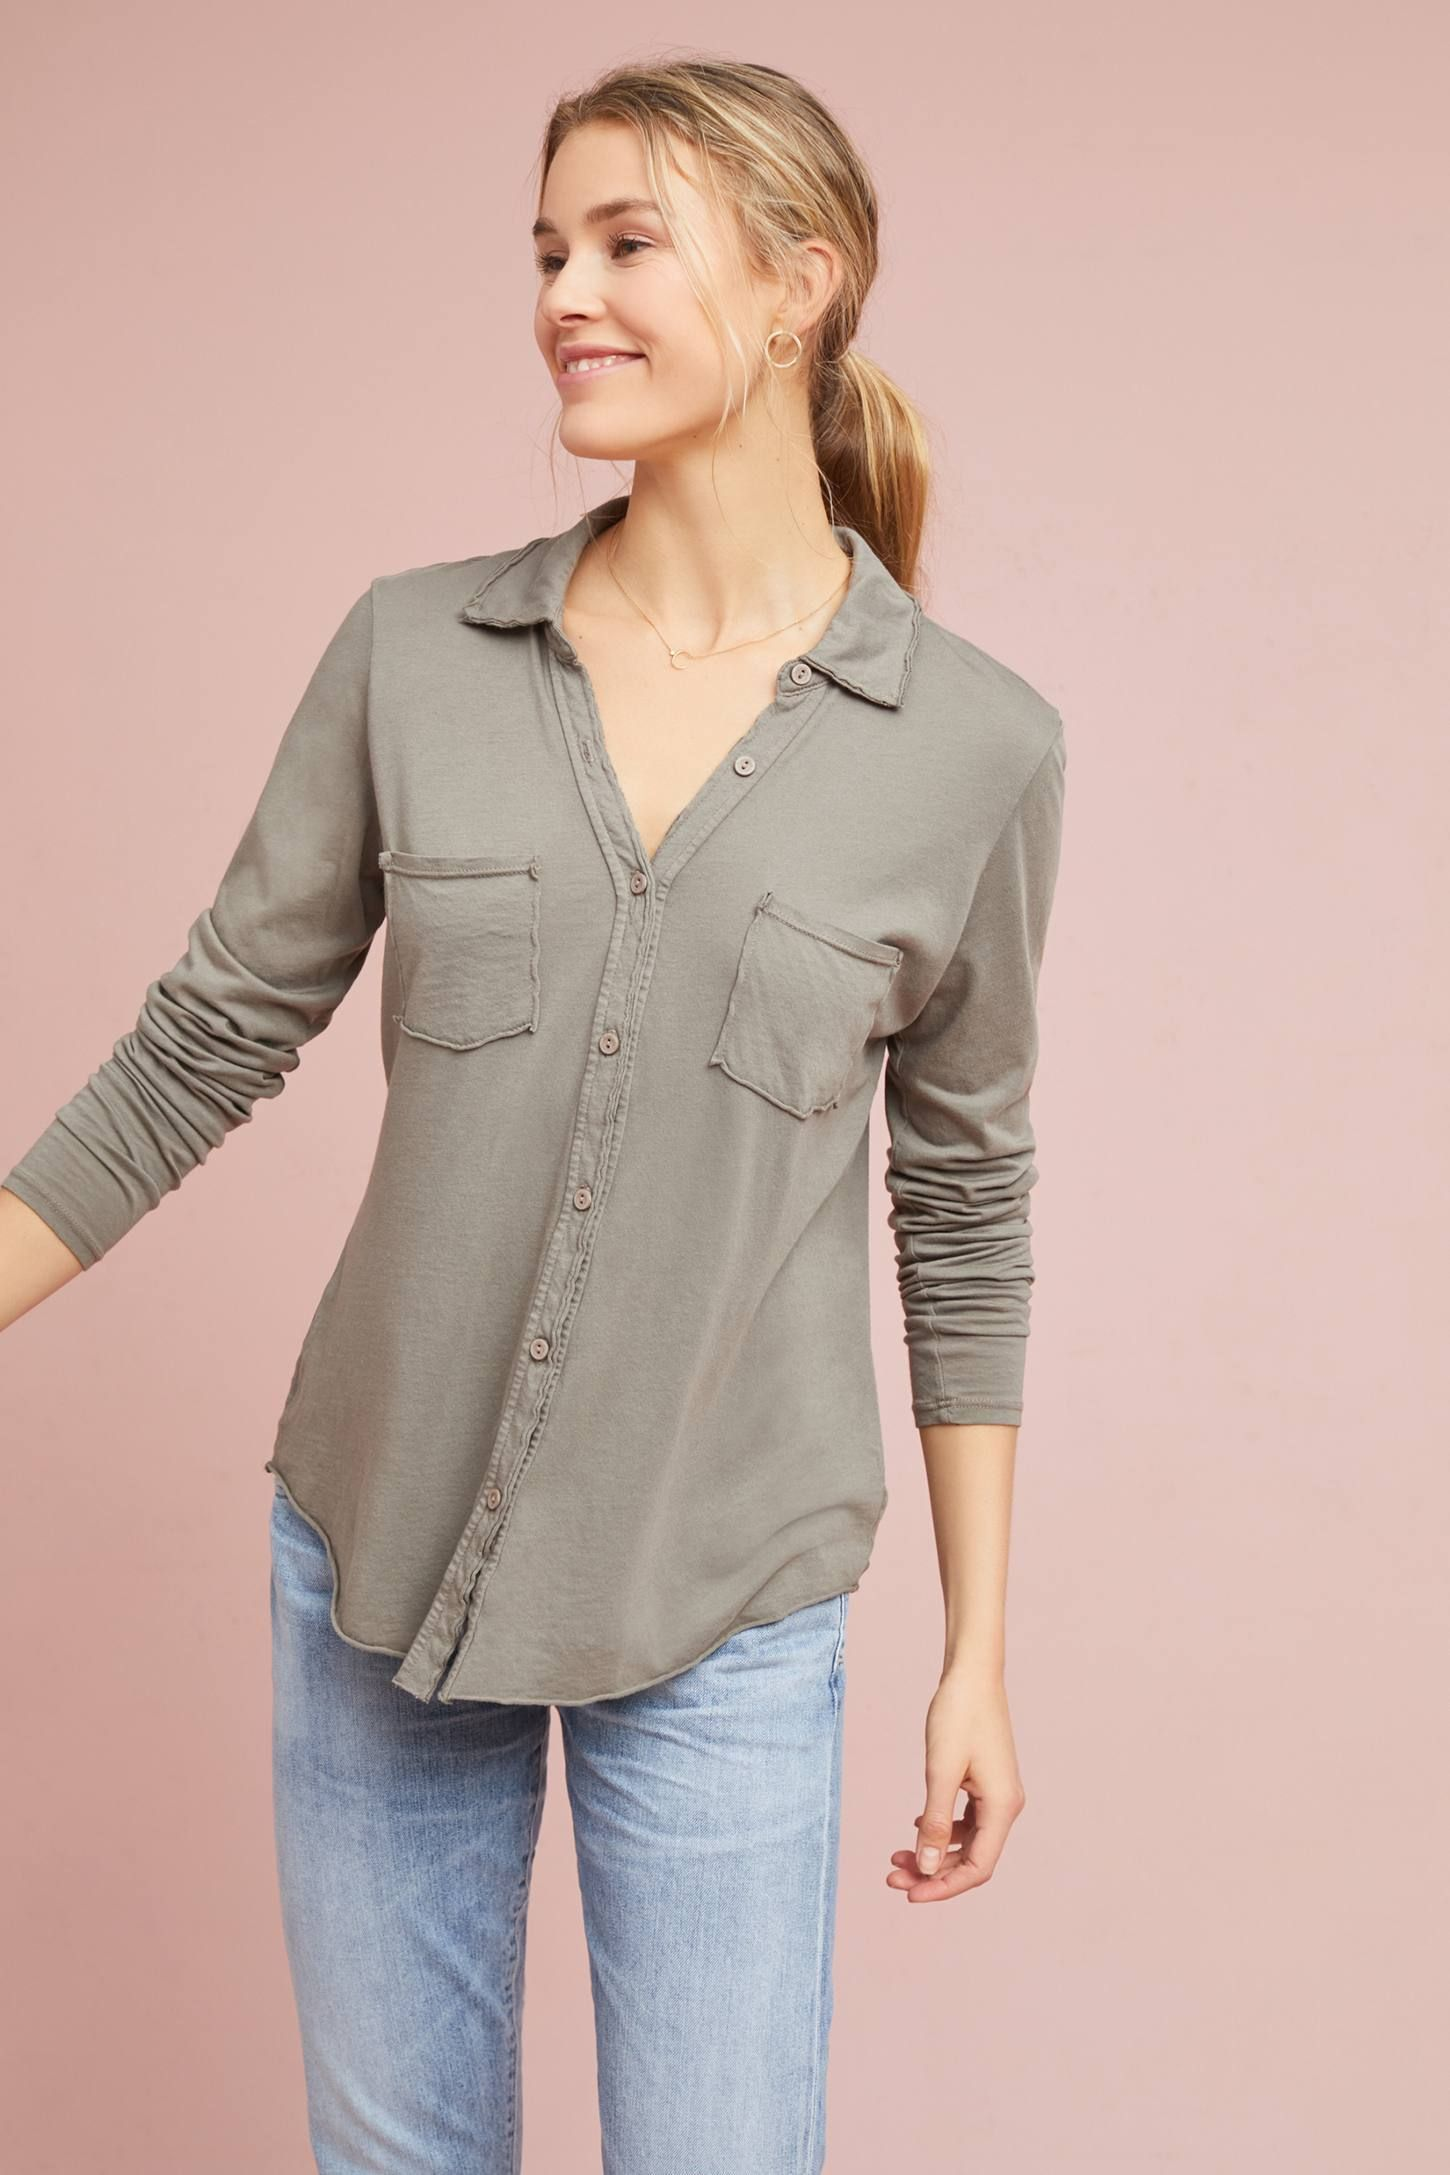 b7b51653e4 Shop the Michael Stars Jersey Buttondown and more Anthropologie at  Anthropologie today. Read customer reviews